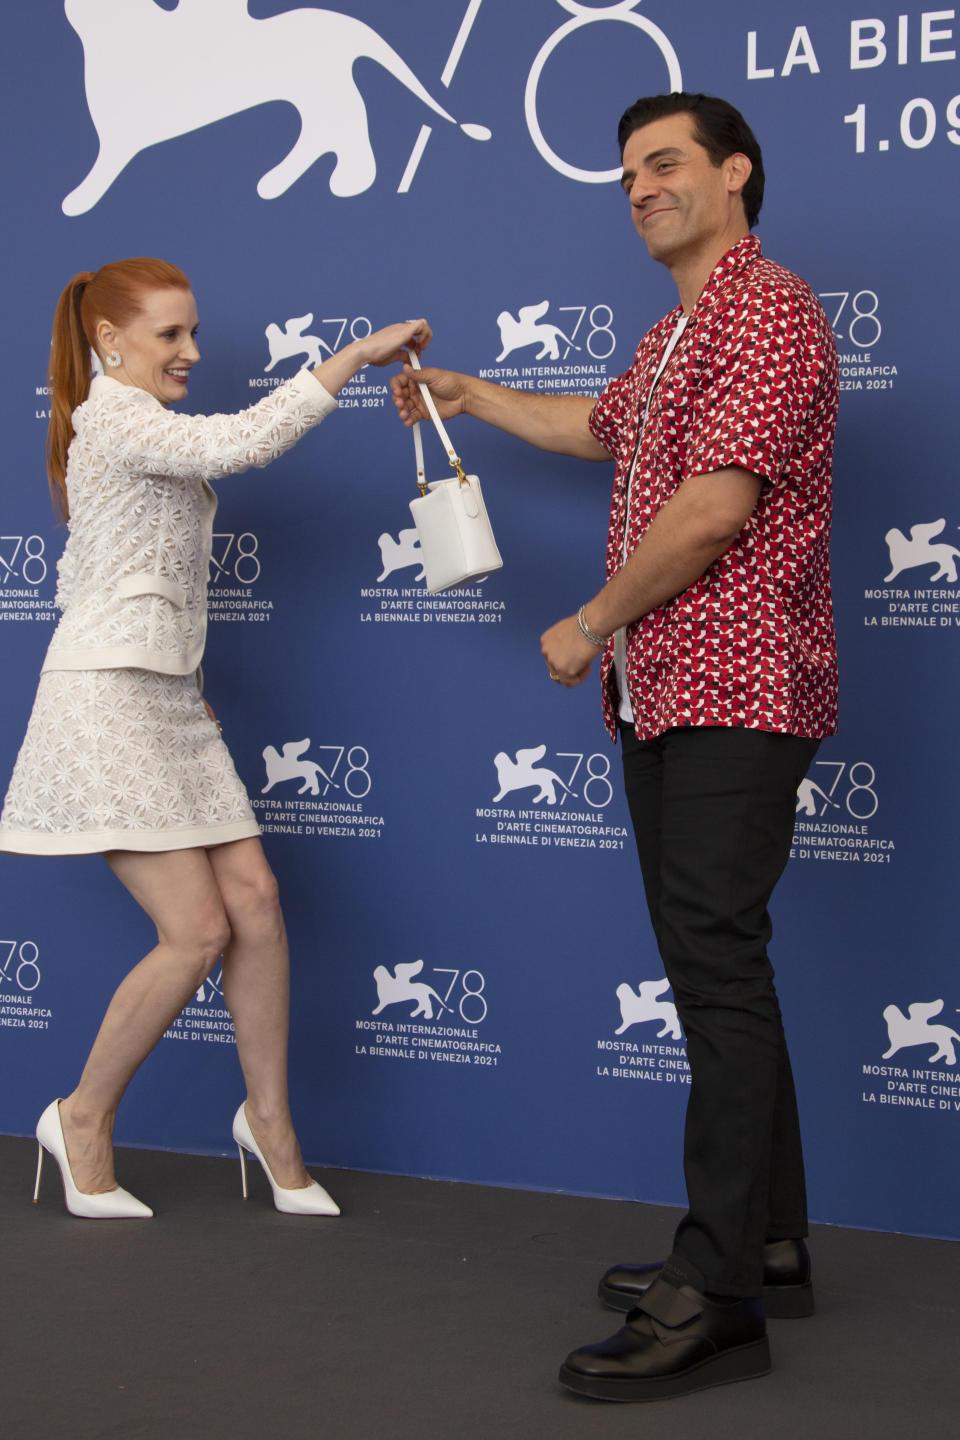 Oscar Isaac, right, and Jessica Chastain pose for photographers at the photo call for the film 'Scenes of a Marriage' during the 78th edition of the Venice Film Festival in Venice, Italy, Saturday, Sep, 4, 2021. (Photo by Joel C Ryan/Invision/AP)